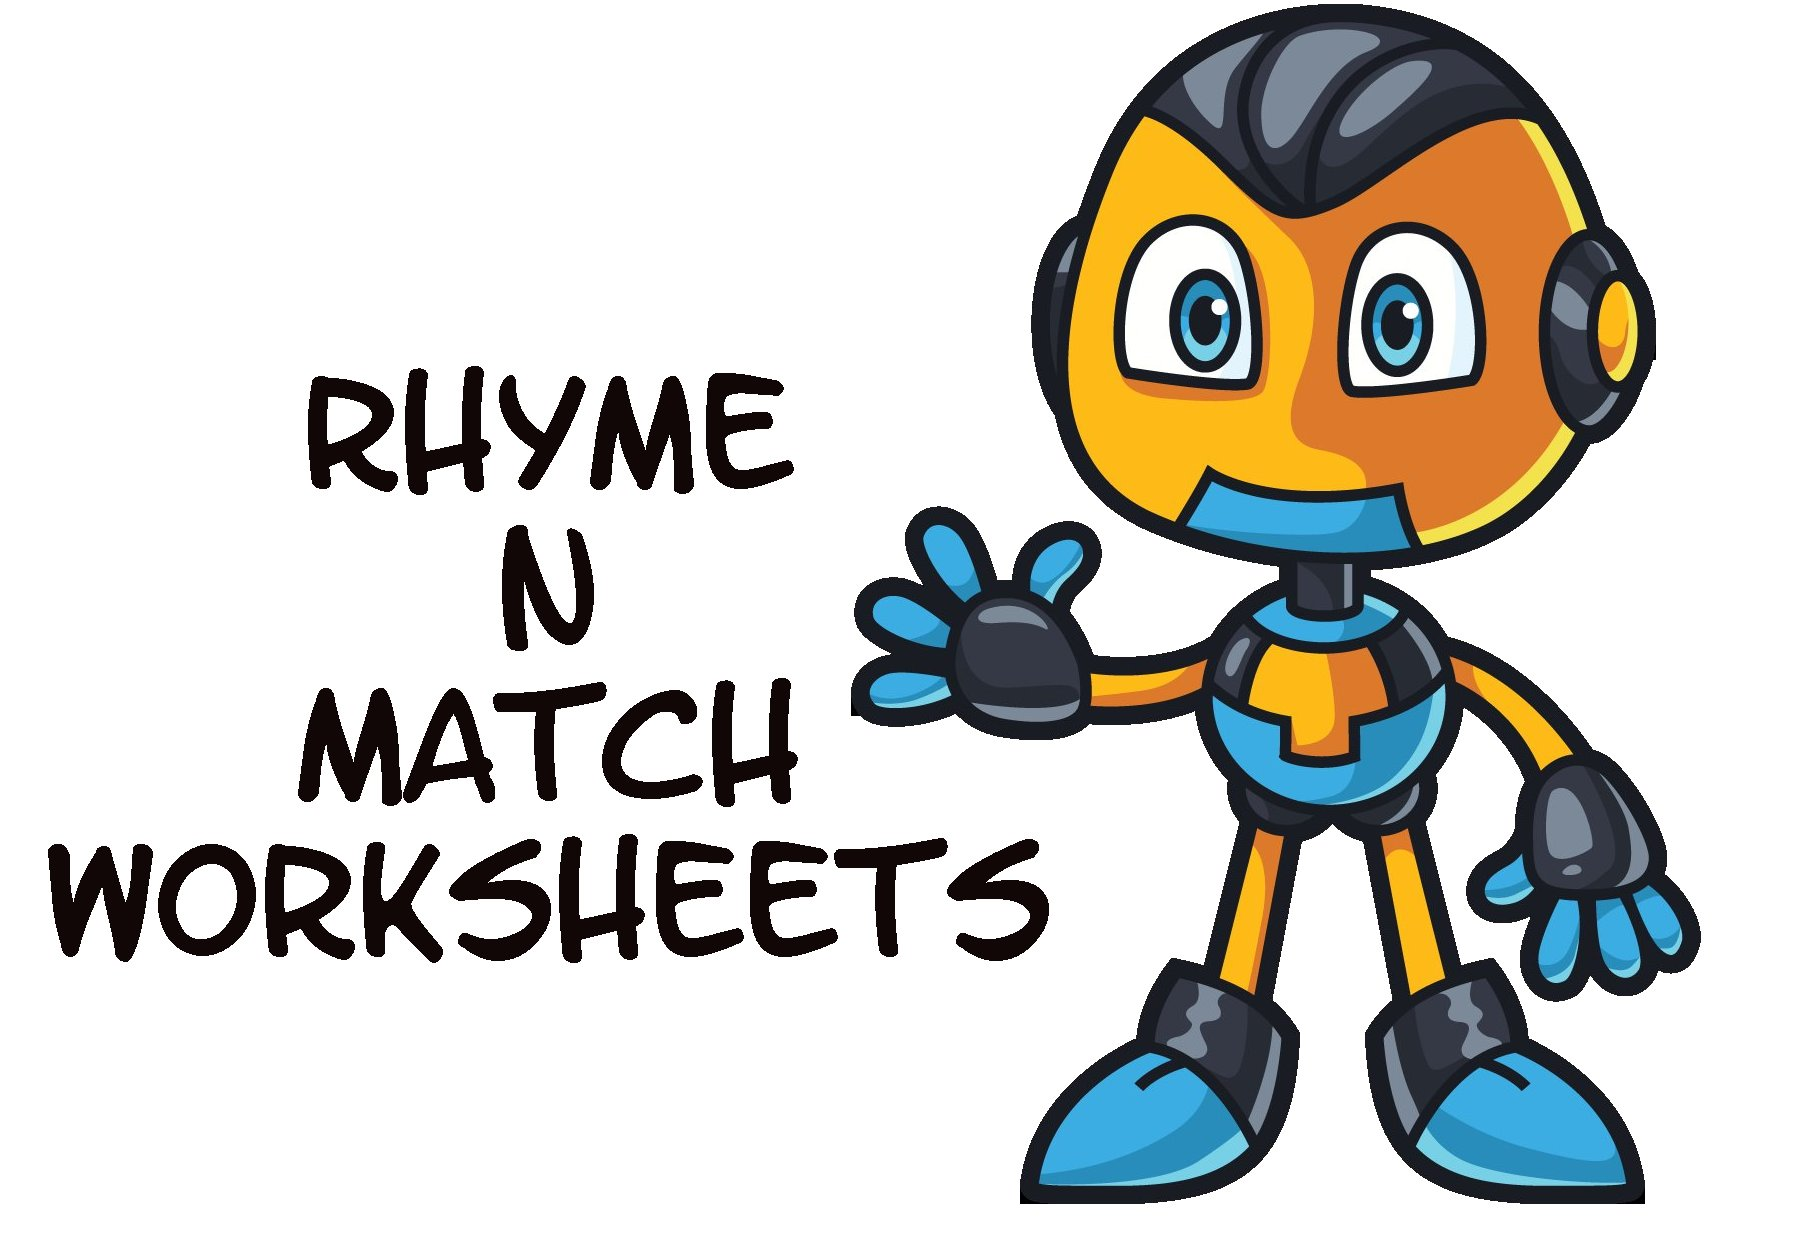 rhyming words worksheets 00